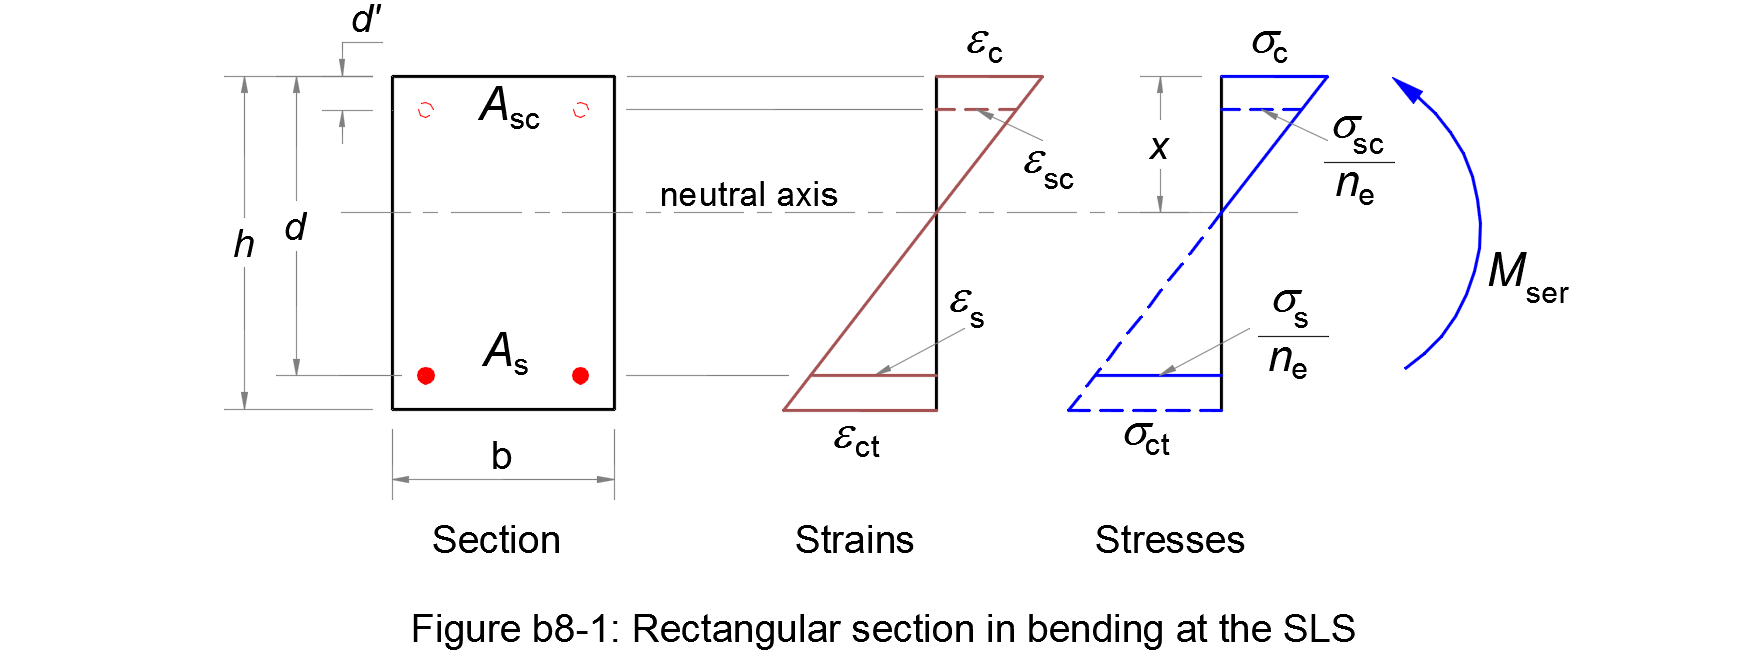 Stresses of a rectangular section in bending at the SLS